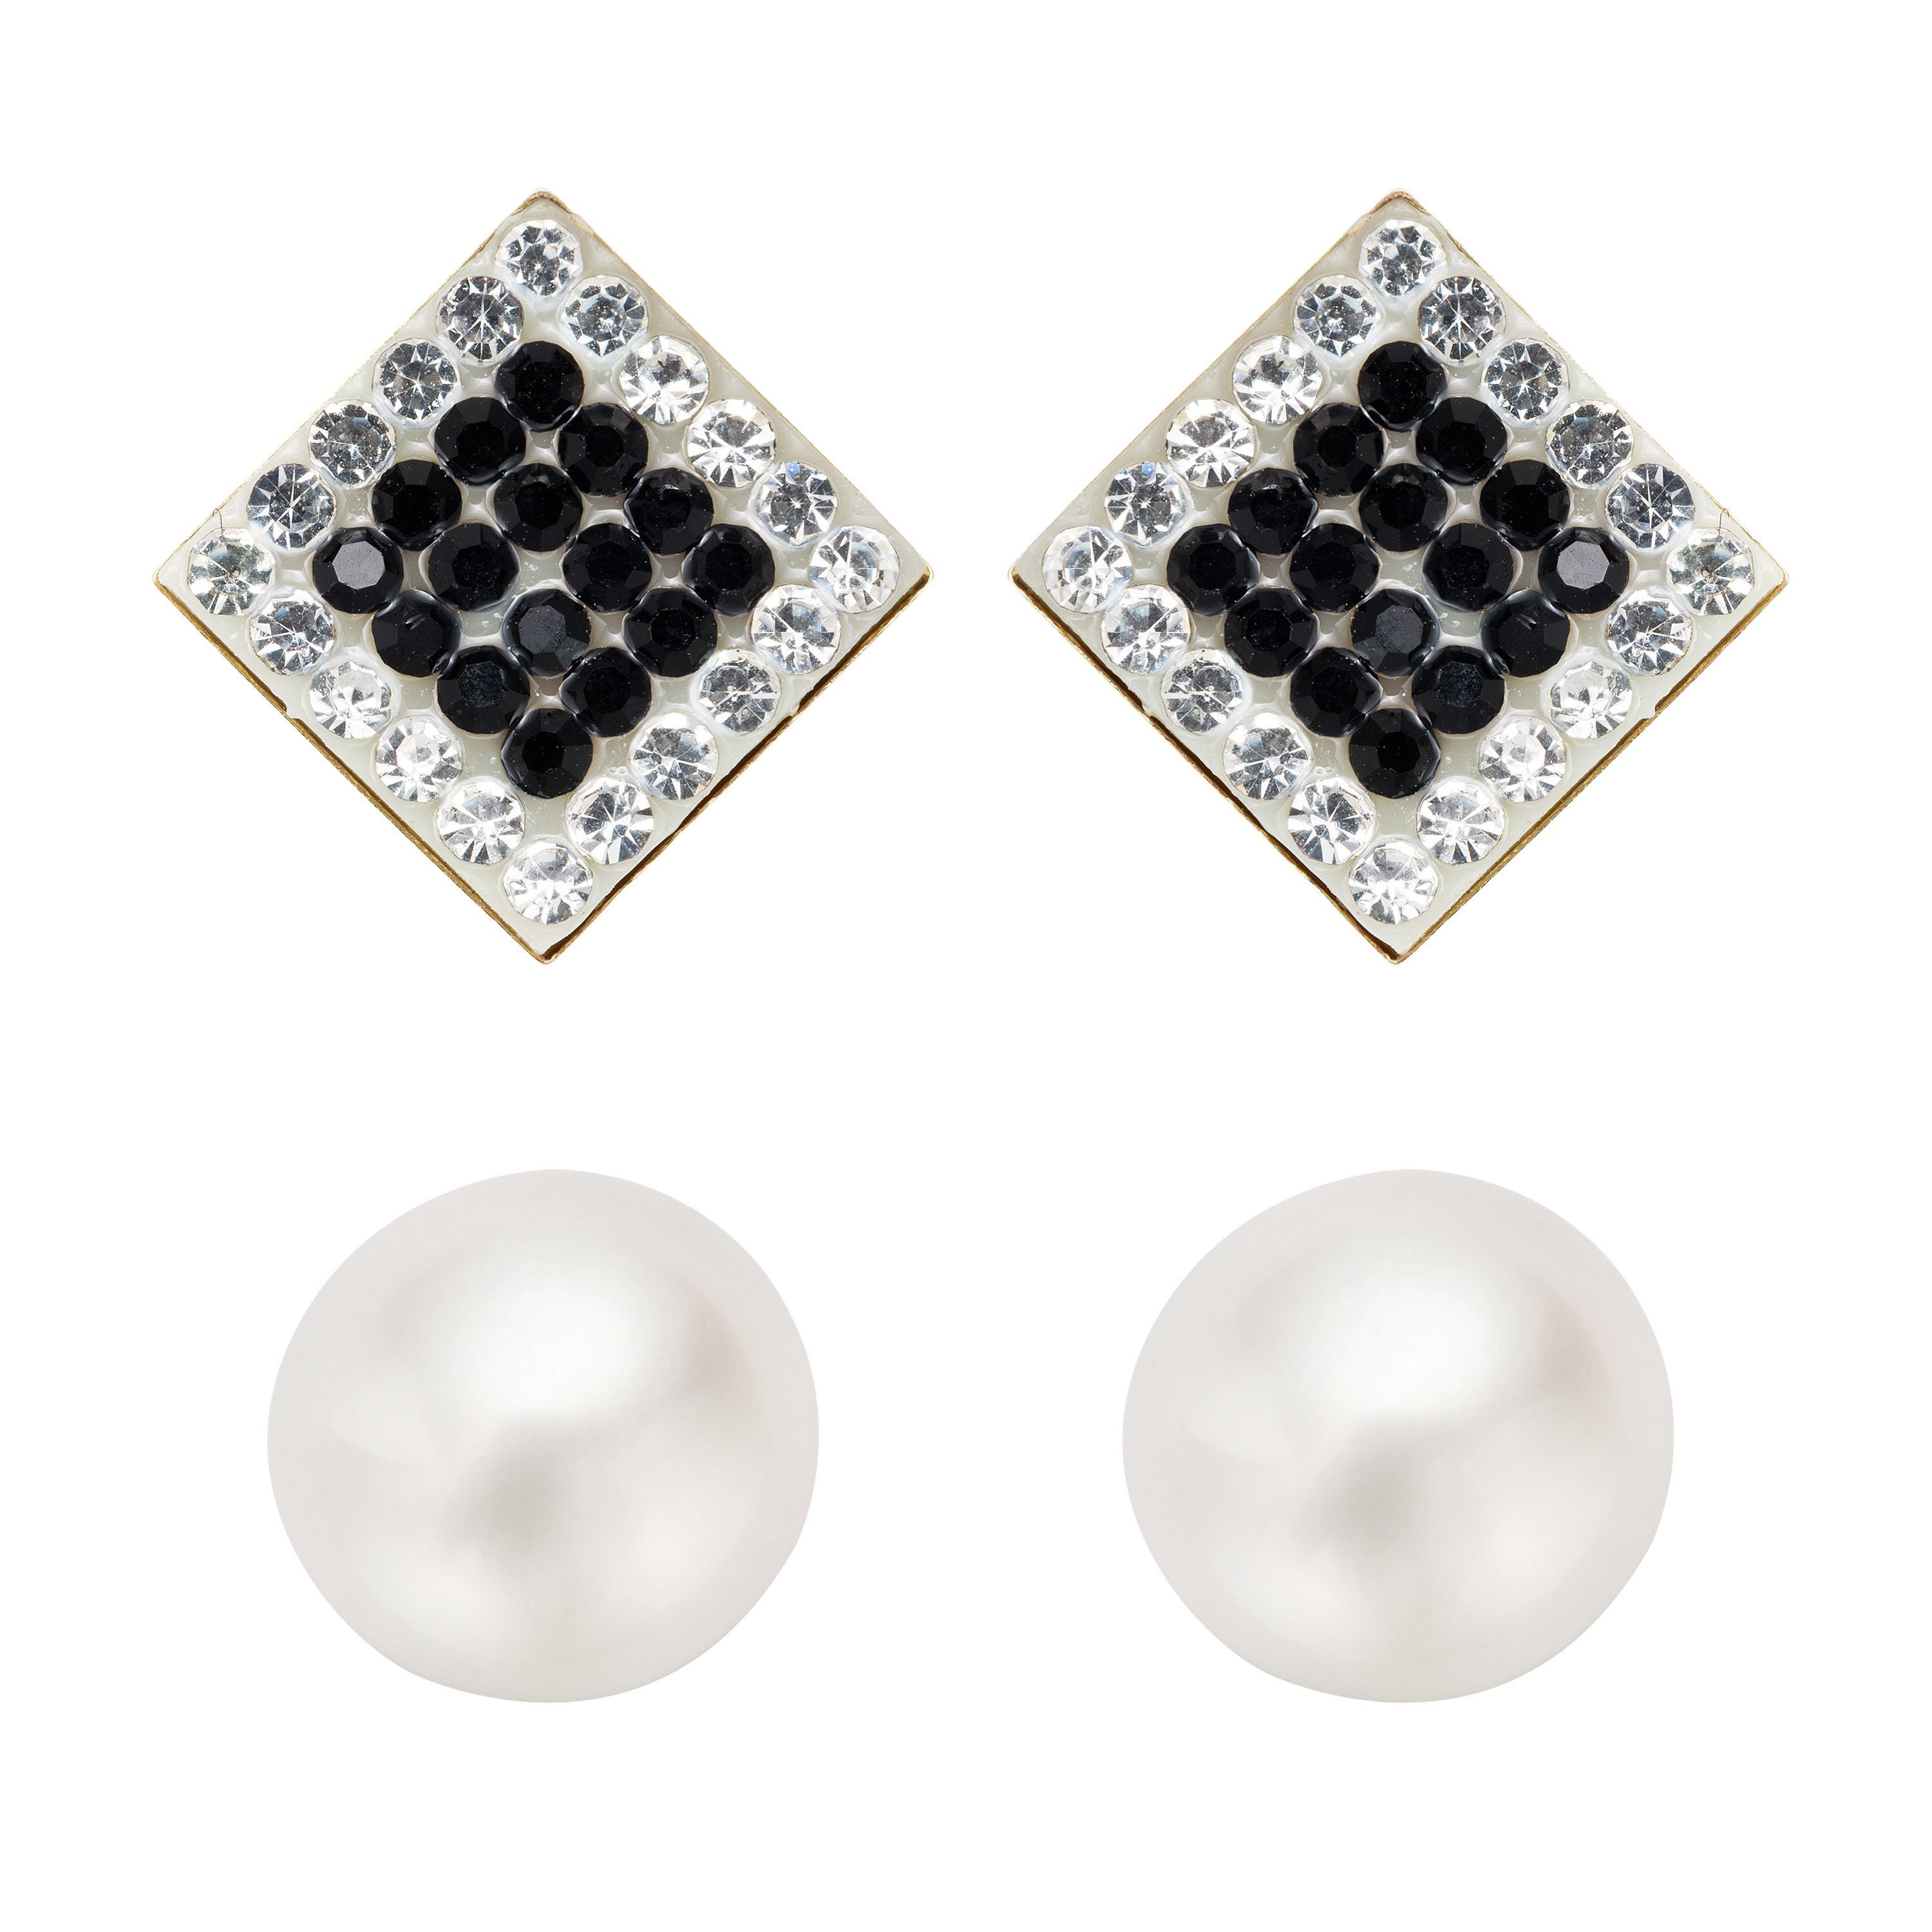 fc109f601 Pearlyta 14k Gold Round Pearl and Black CZ Square Stud Earrings Set with  Gift Box